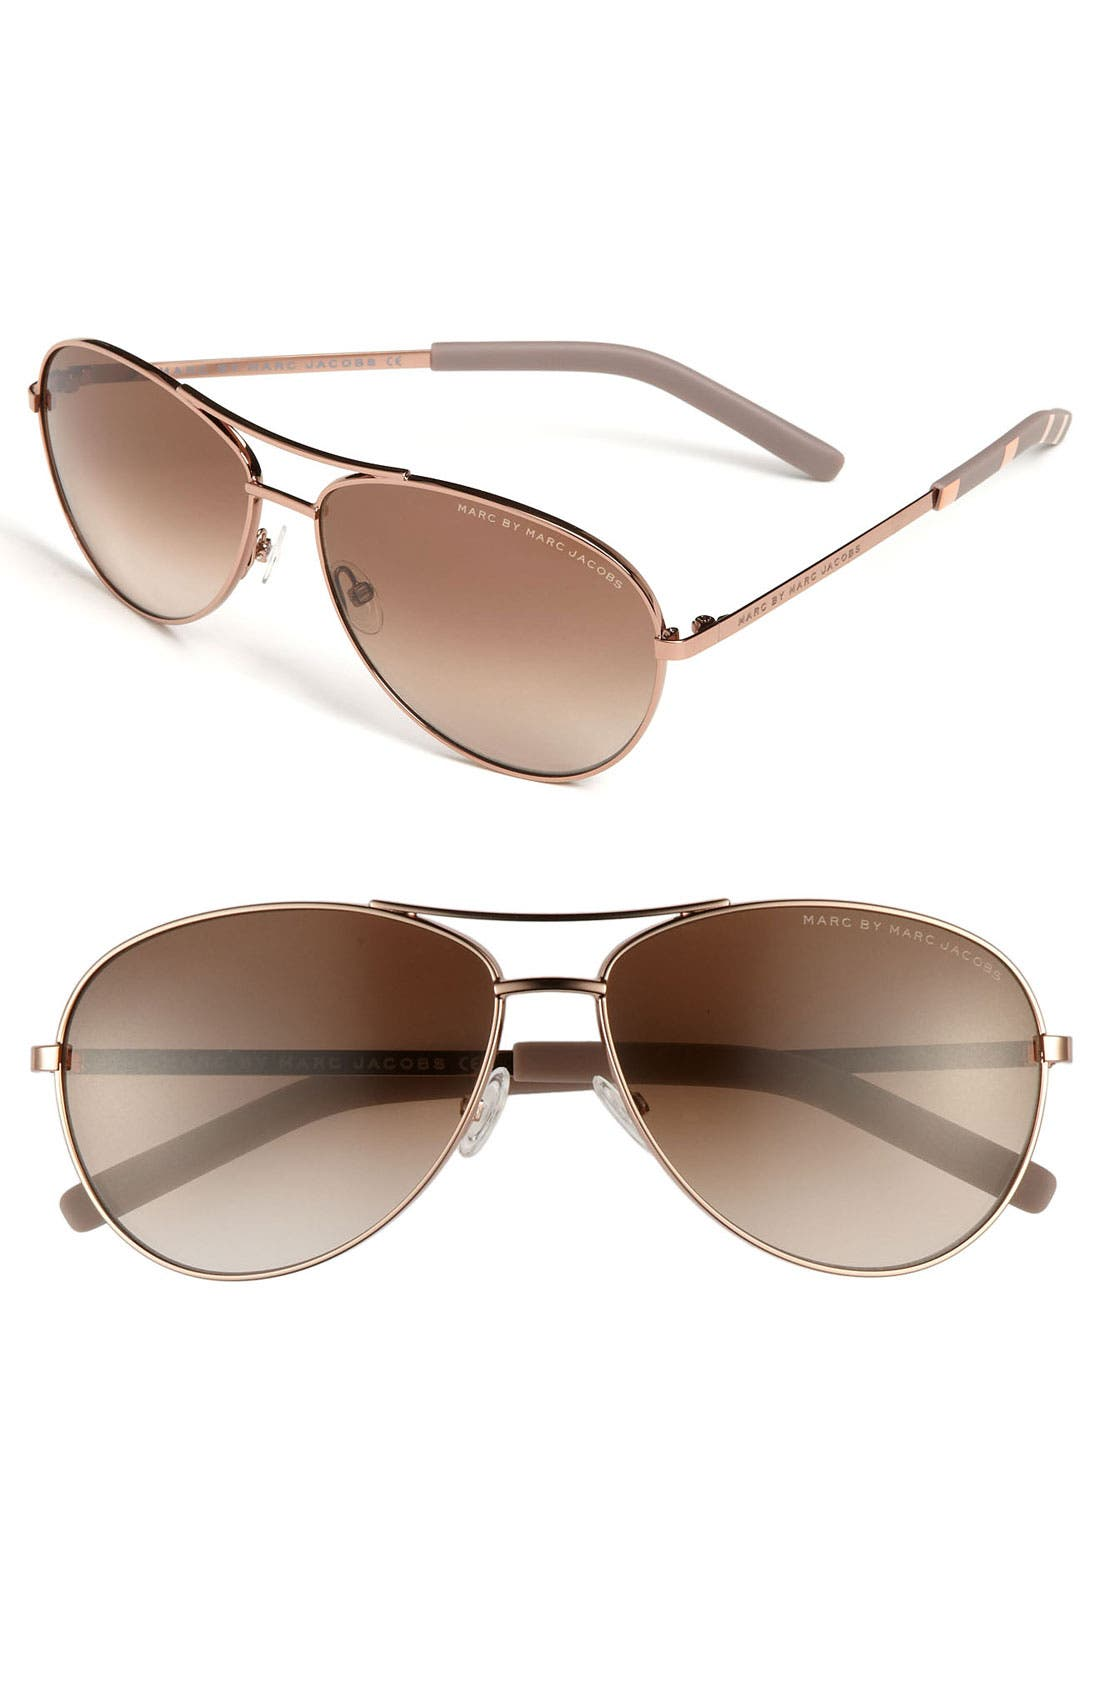 Alternate Image 1 Selected - MARC BY MARC JACOBS 59mm Aviator Sunglasses